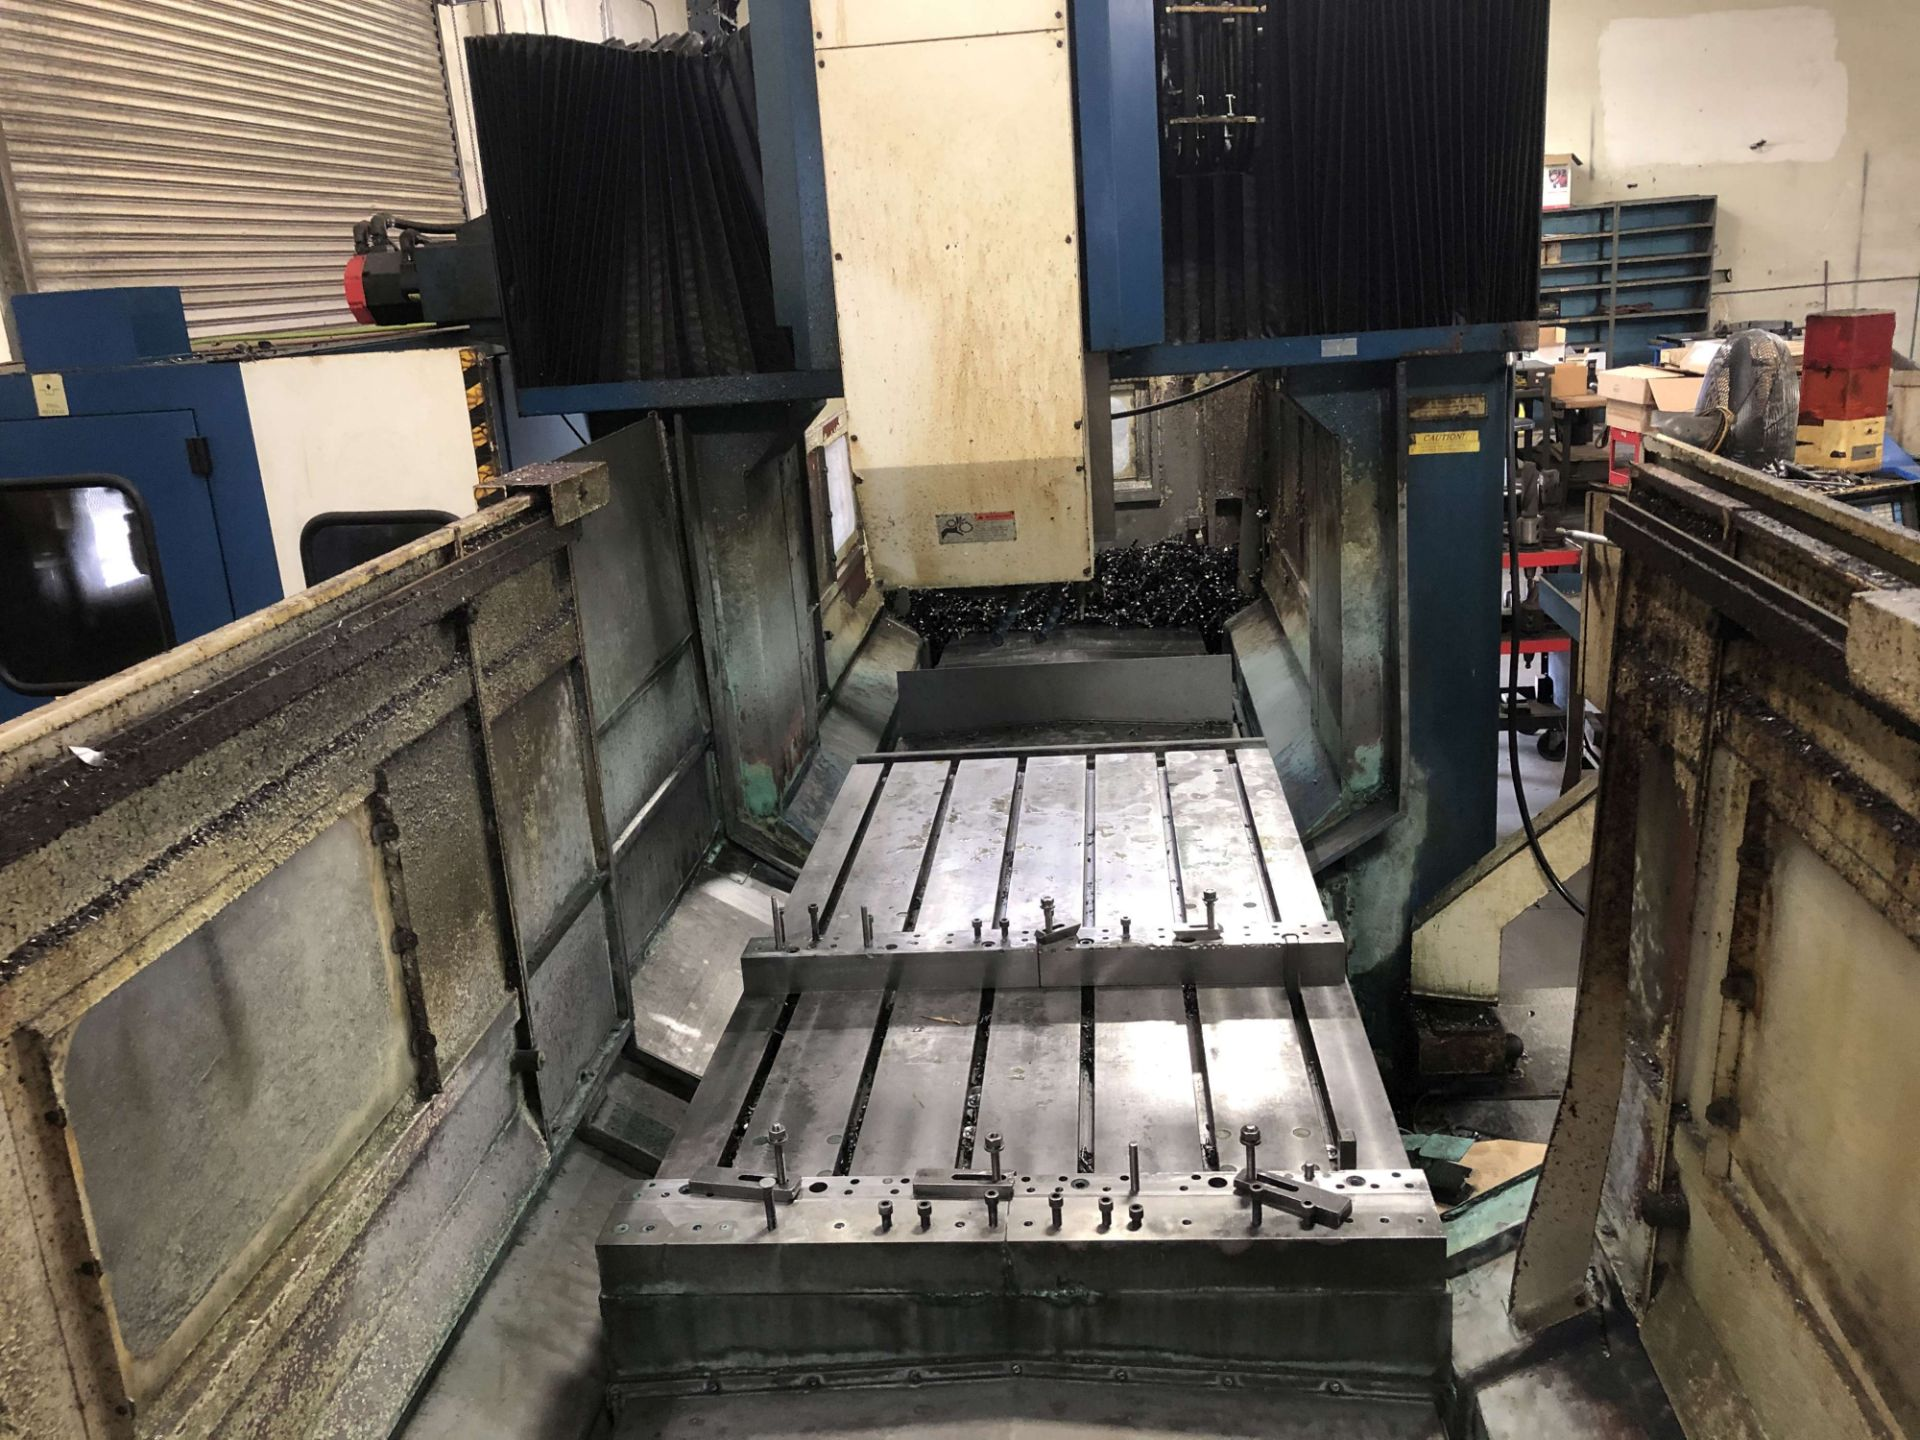 "Lot 38 - 1994 AWEA CNC Double Column Vertical Machining Center, Model PB2110, X=83.1"", Y=43.3"", Z=19.7"", 43-"